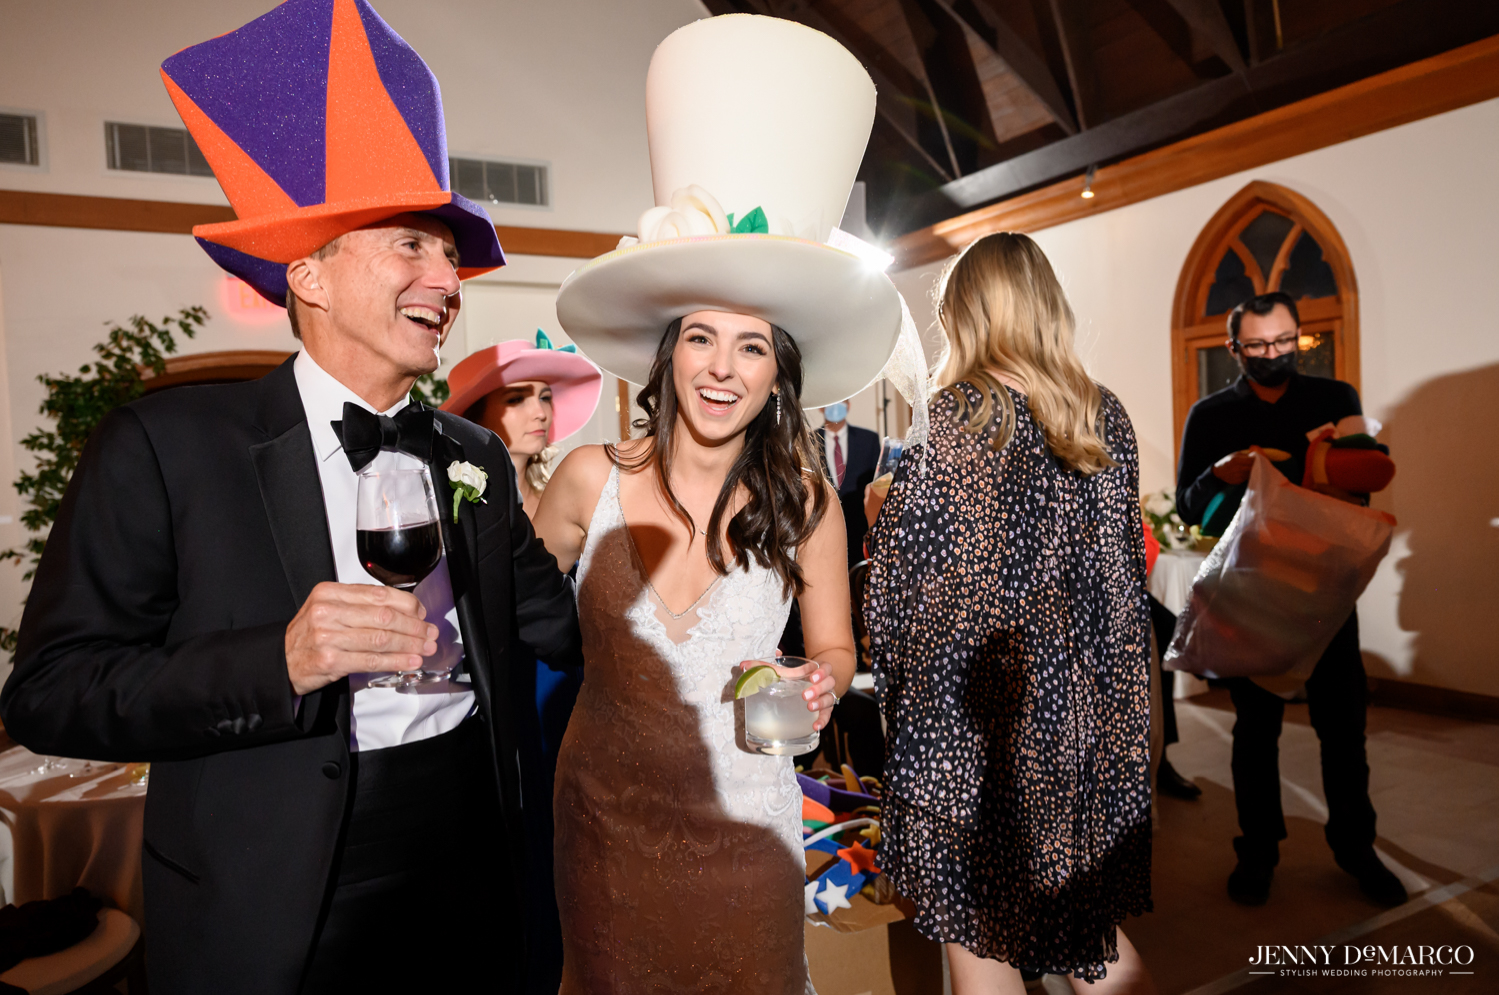 bride and her father dancing with foam party hats on head and drinks in hand